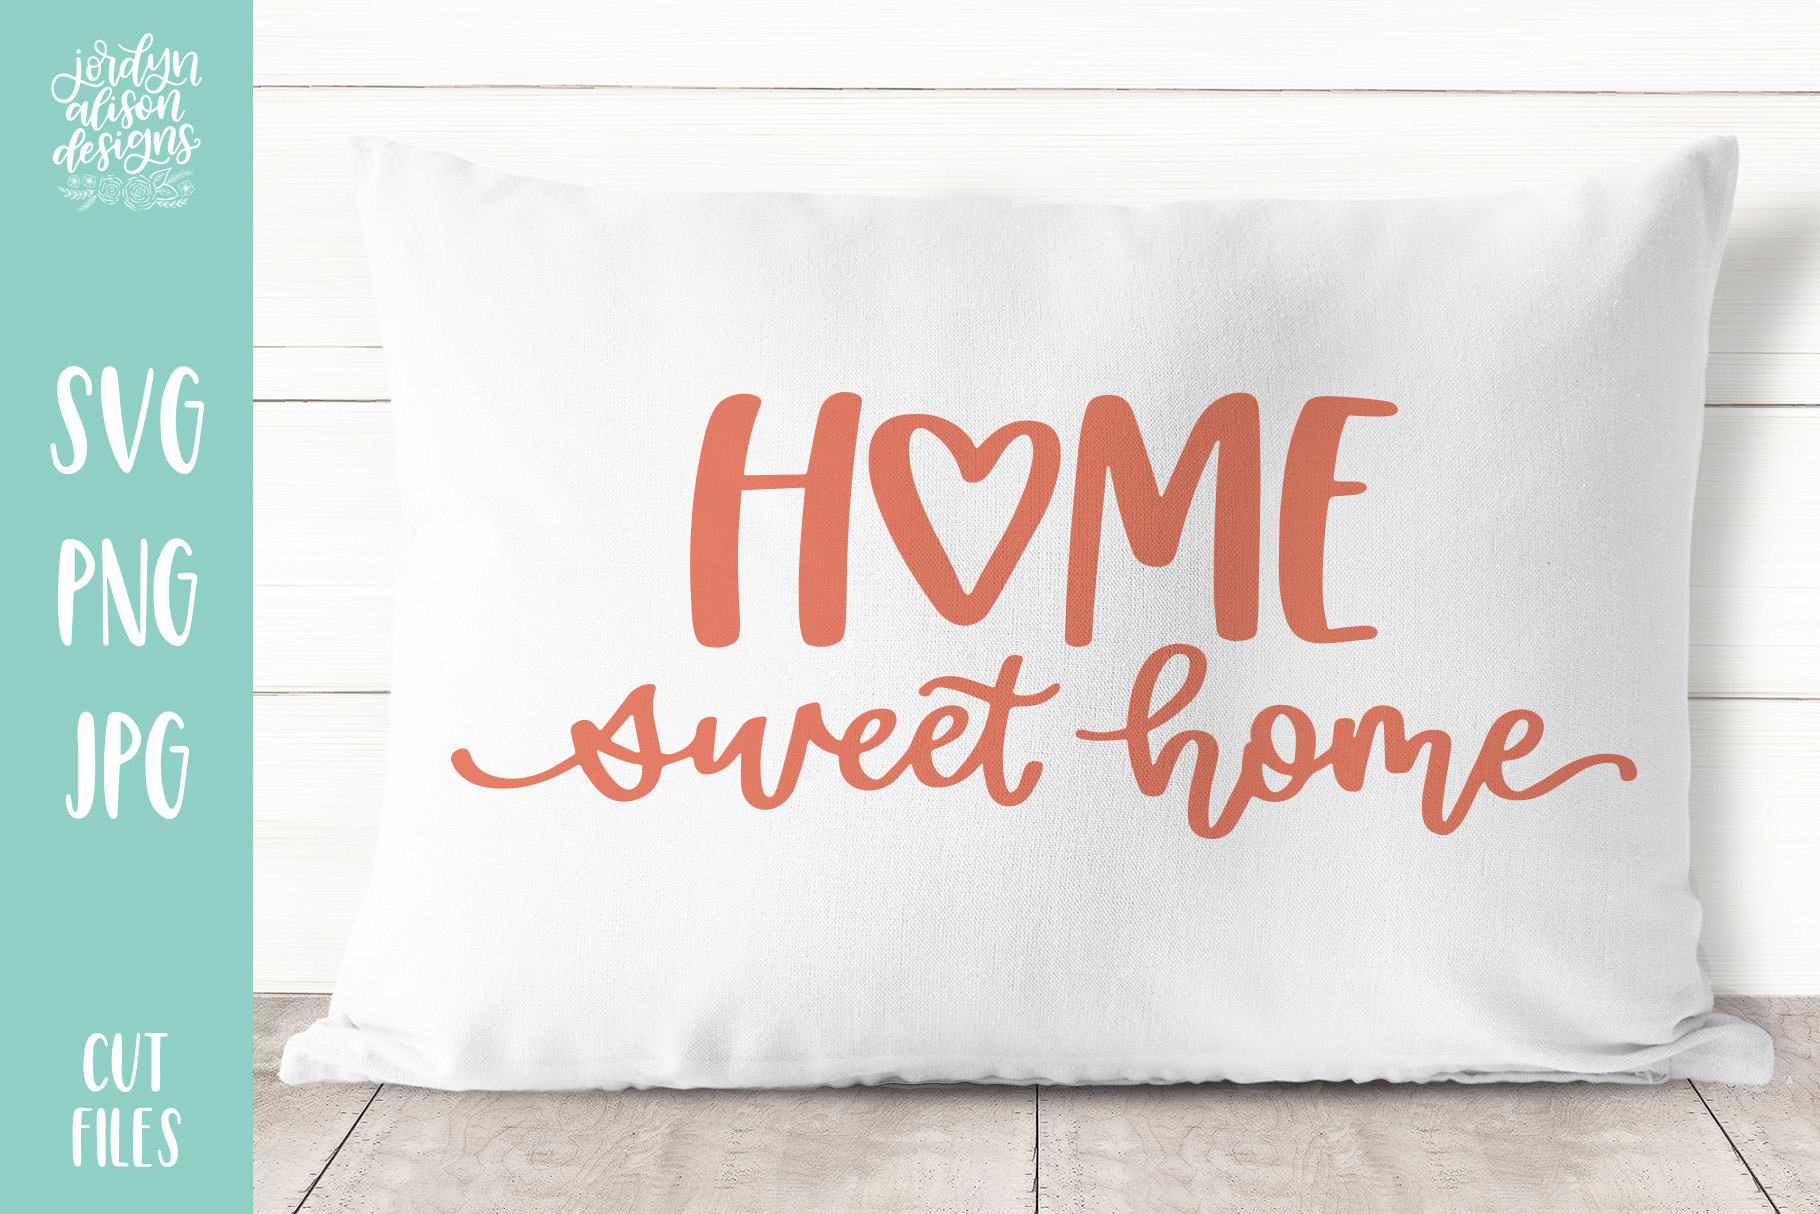 Home Sweet Home Heart, Hand Lettered SVG Cut File example image 2